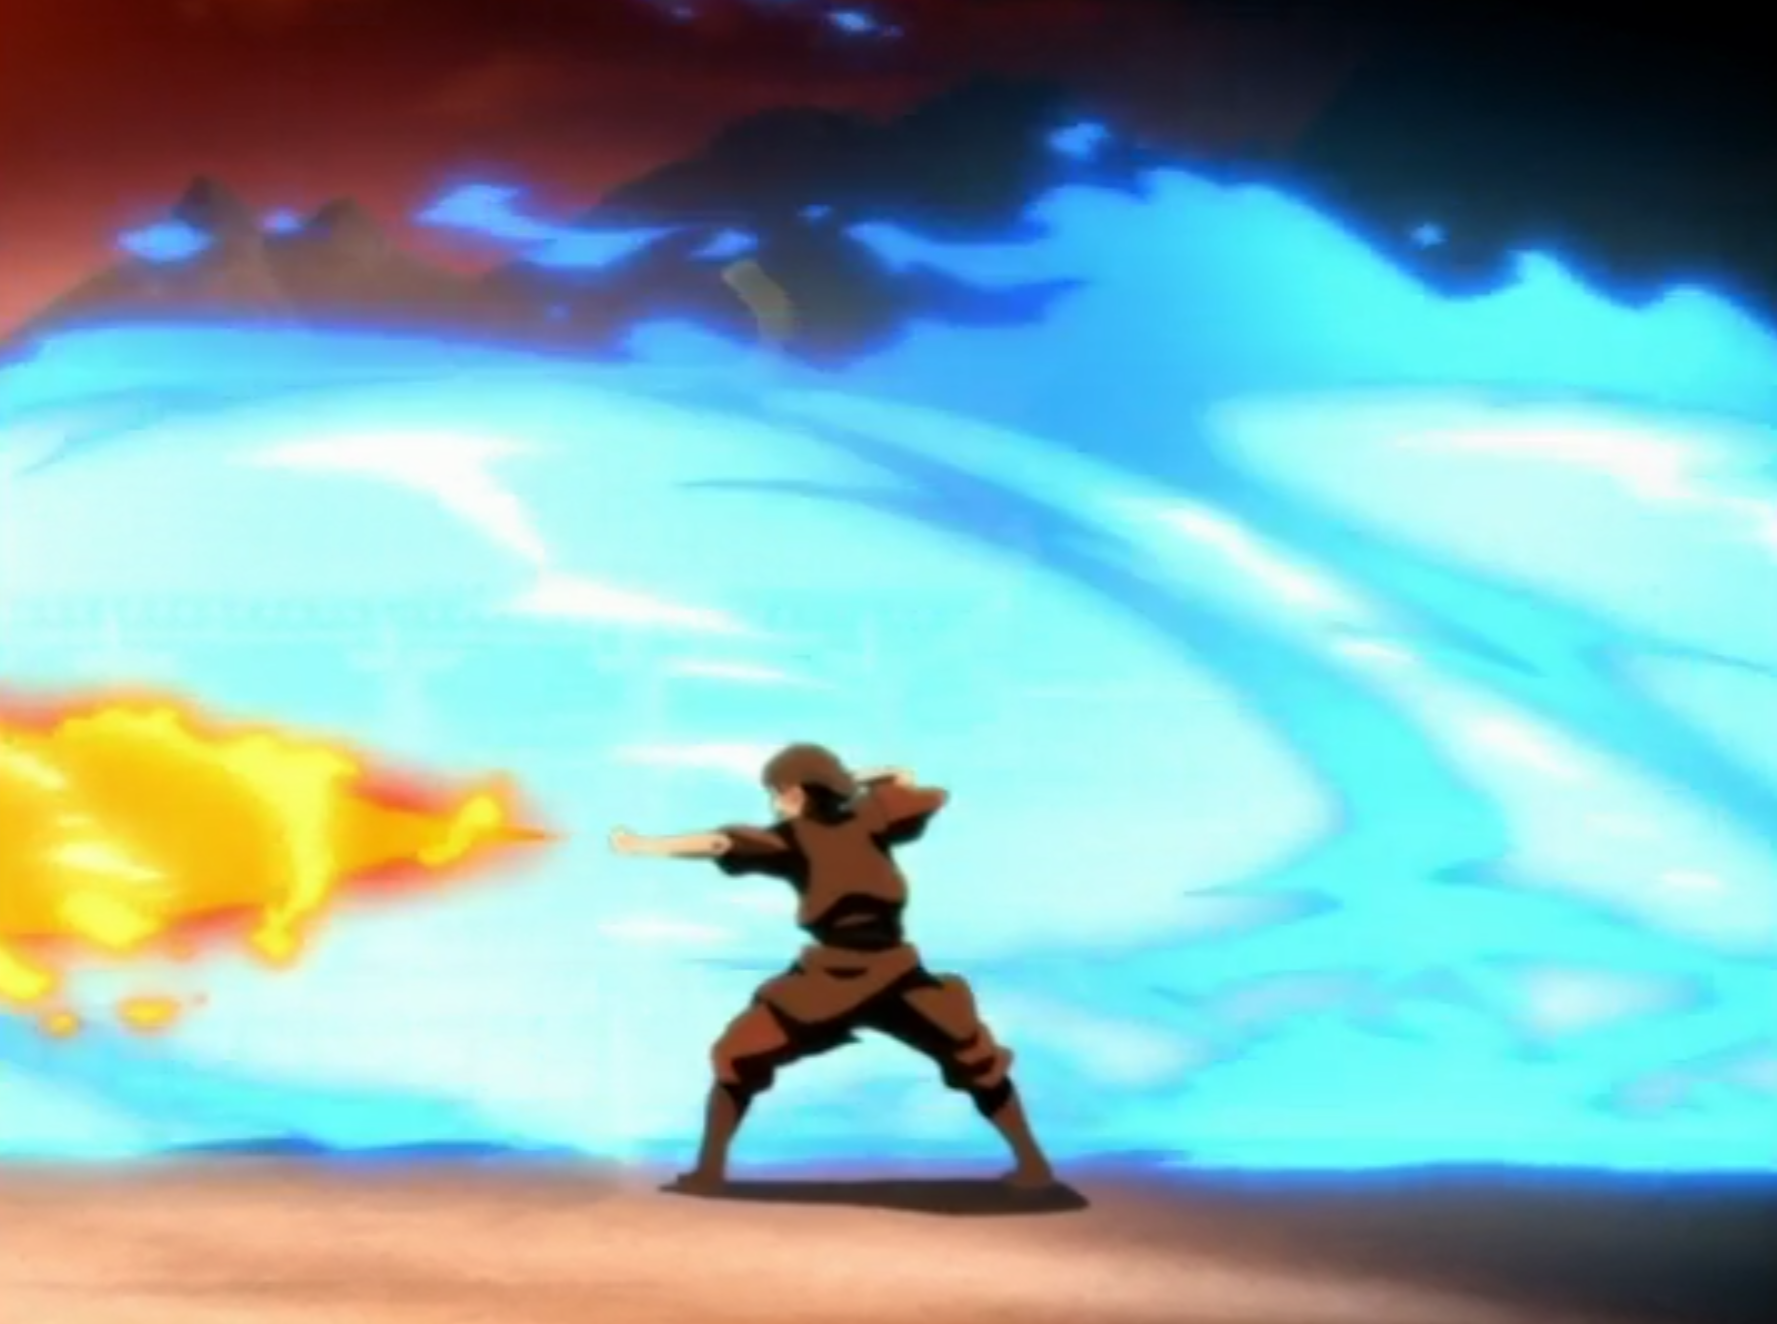 zuko-vs-azula-fight-sozin-comet